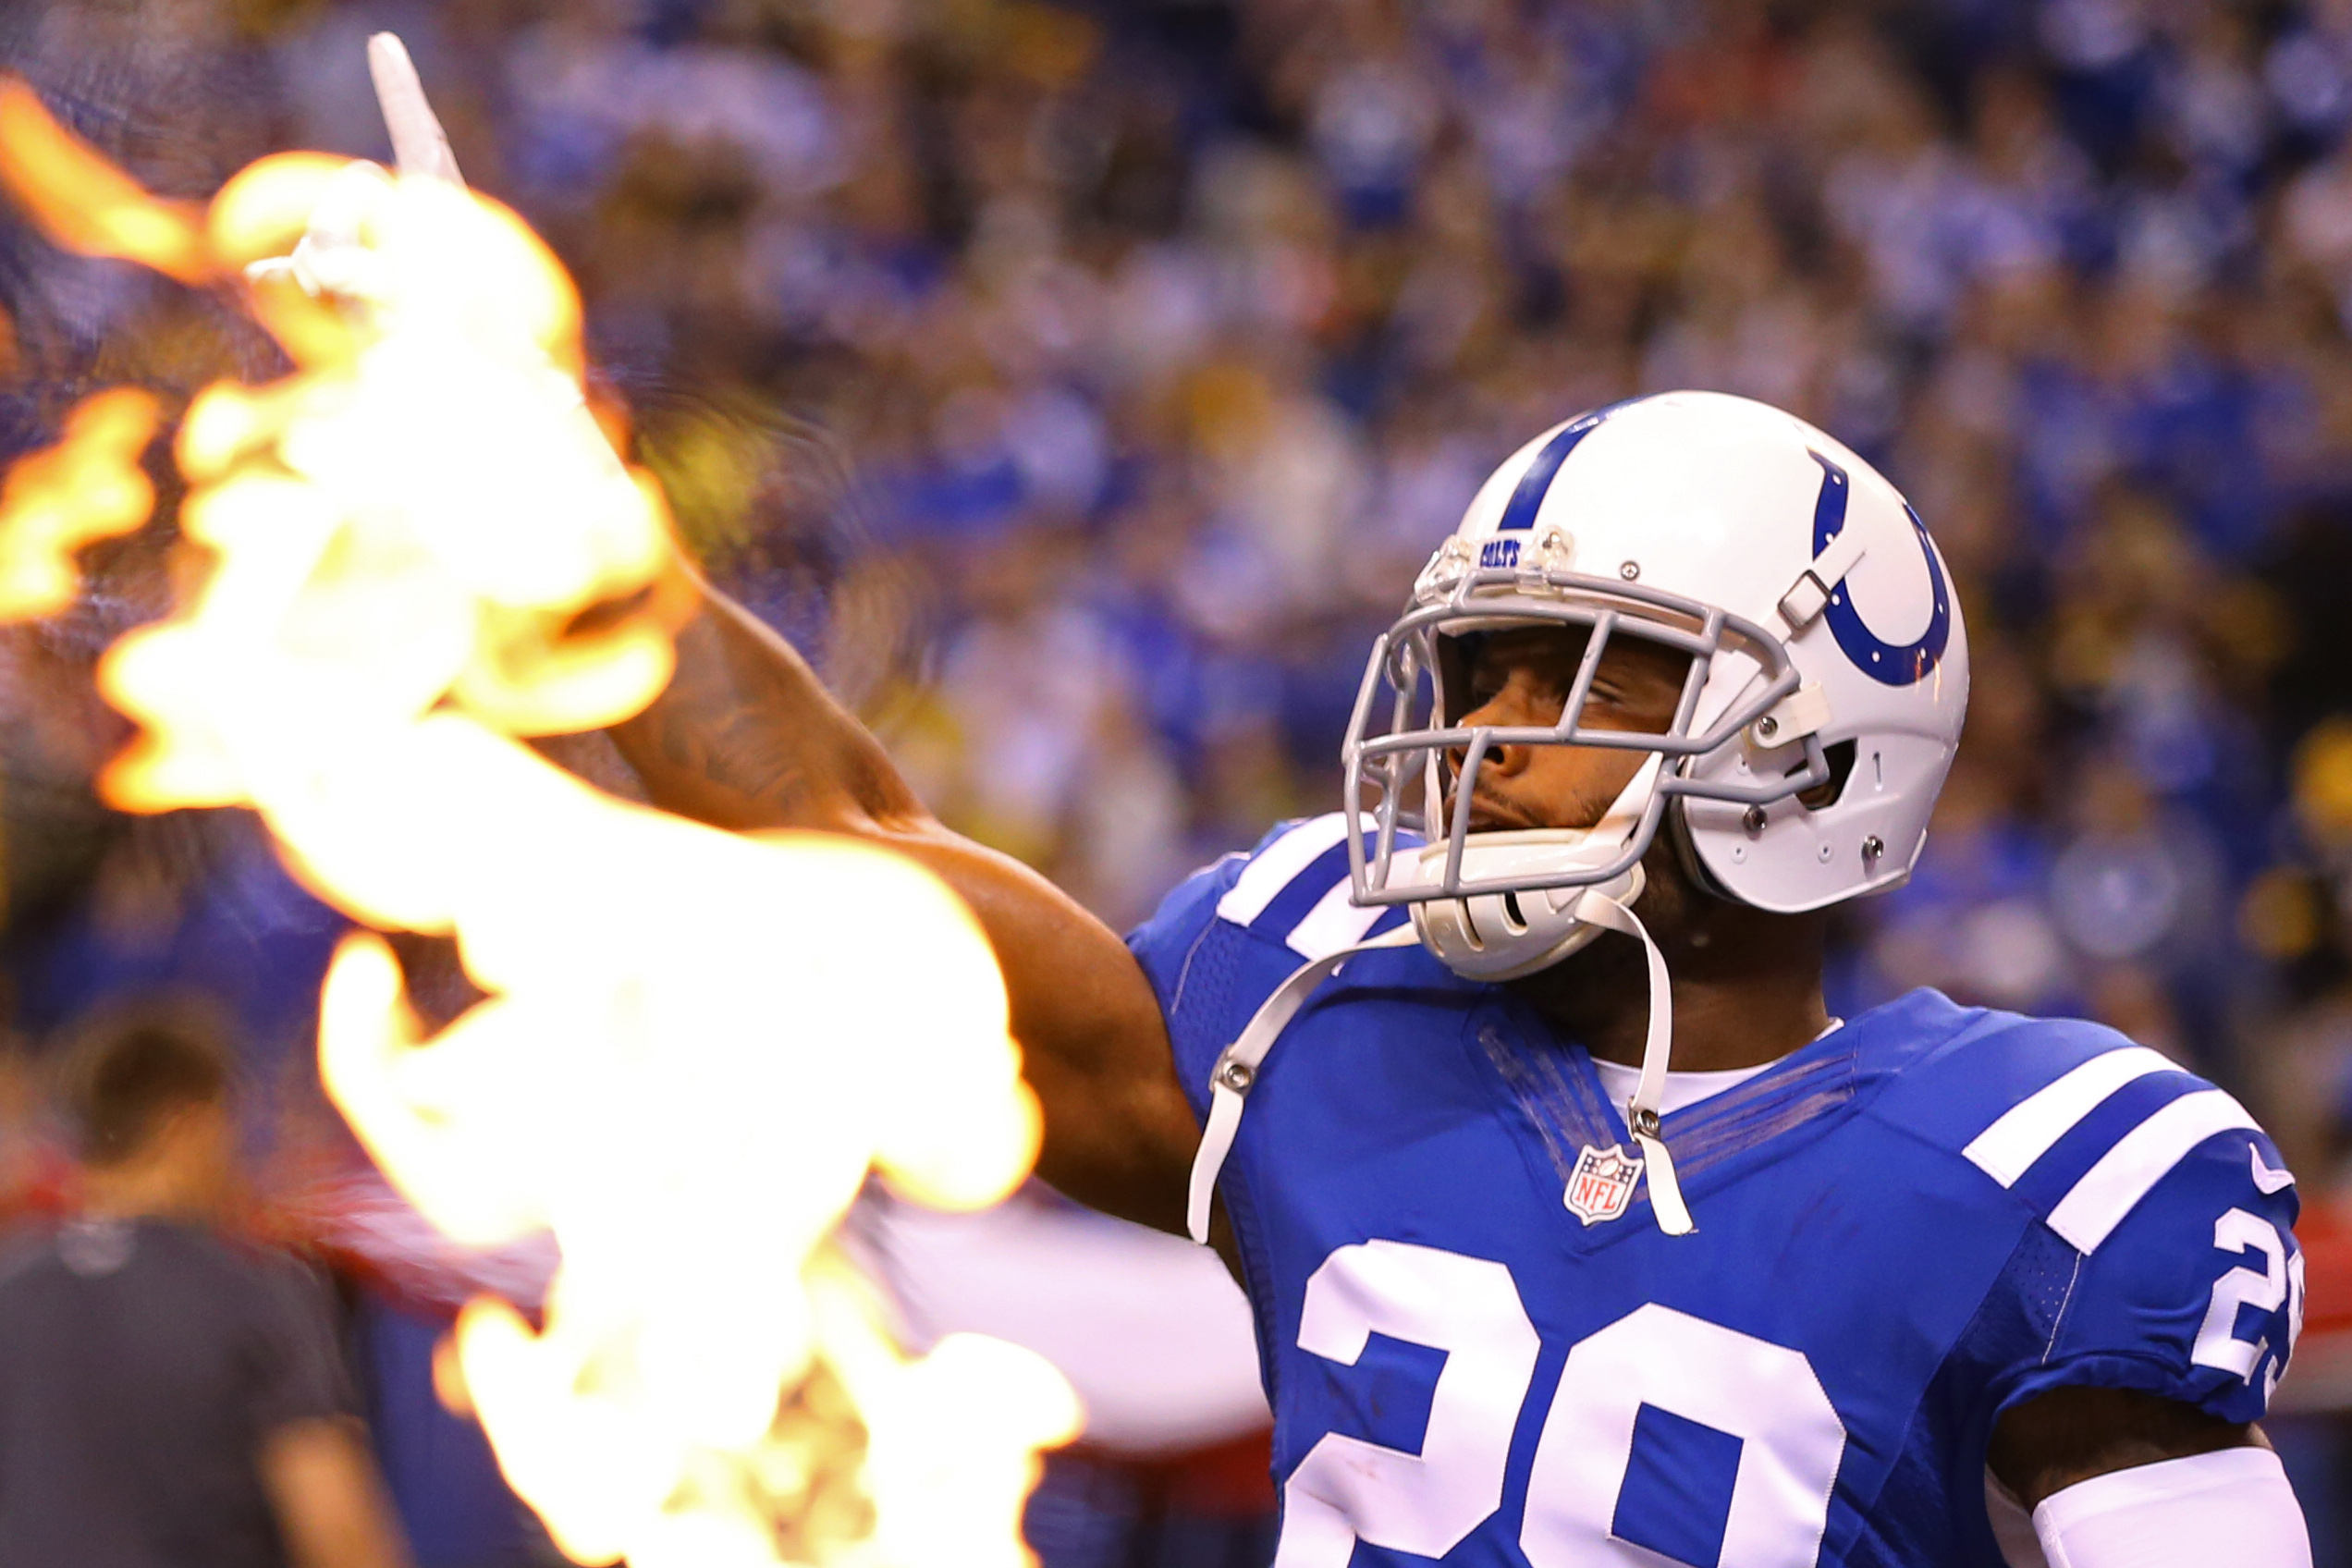 9701163-nfl-pittsburgh-steelers-at-indianapolis-colts